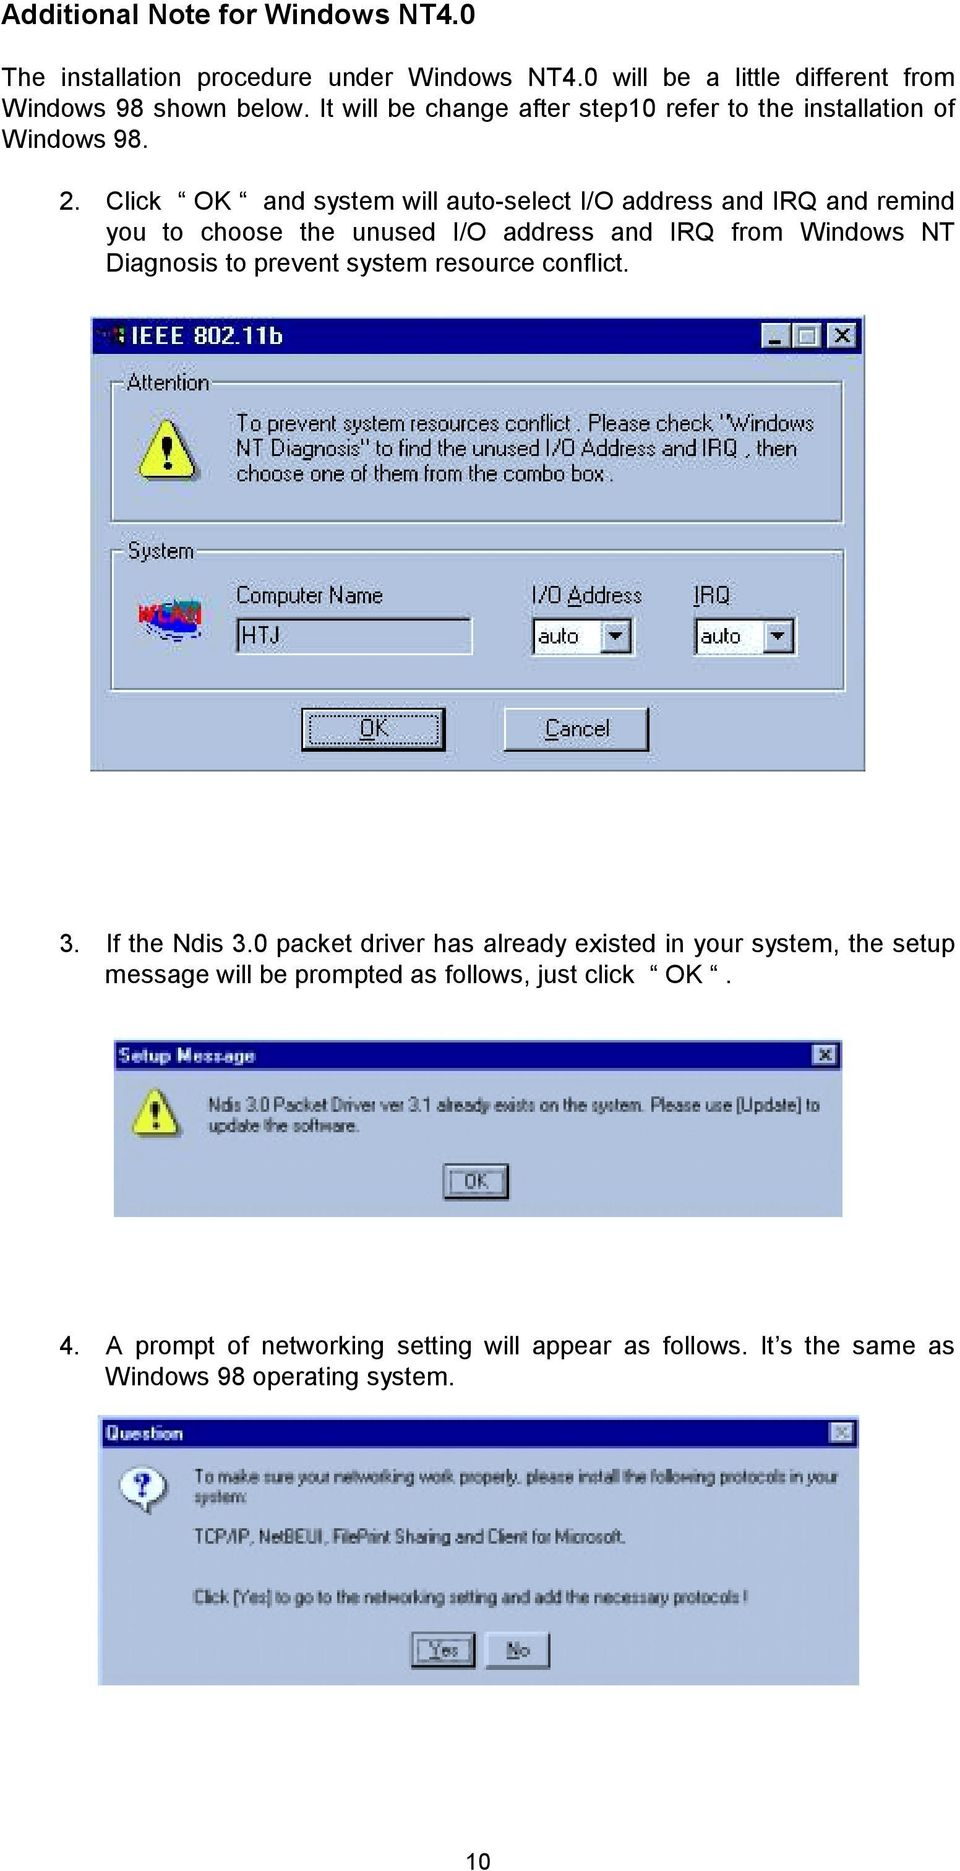 Click OK and system will auto-select I/O address and IRQ and remind you to choose the unused I/O address and IRQ from Windows NT Diagnosis to prevent system